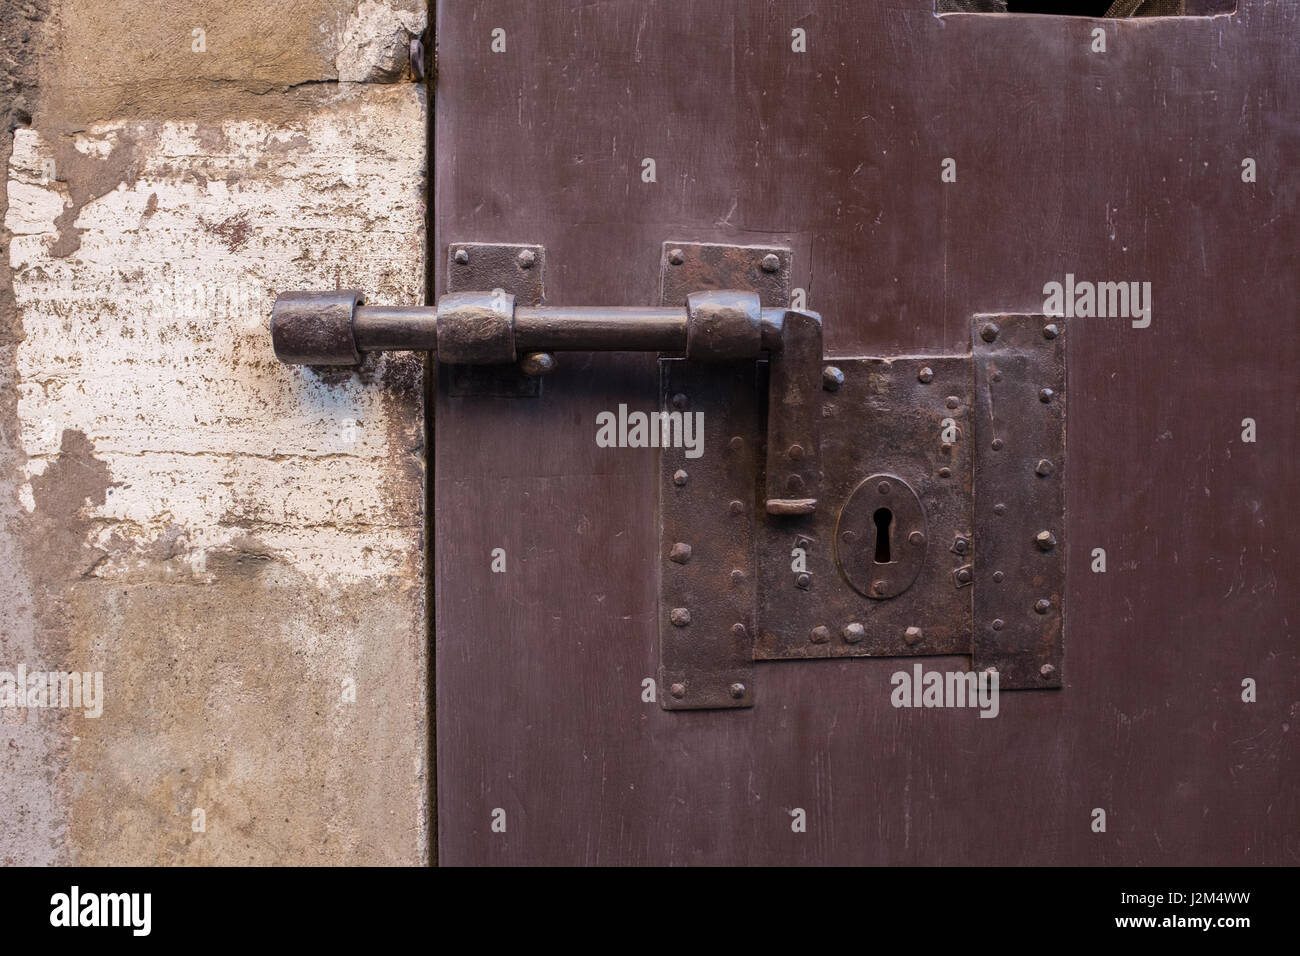 Bolted door & Bolted door Stock Photo: 139355157 - Alamy